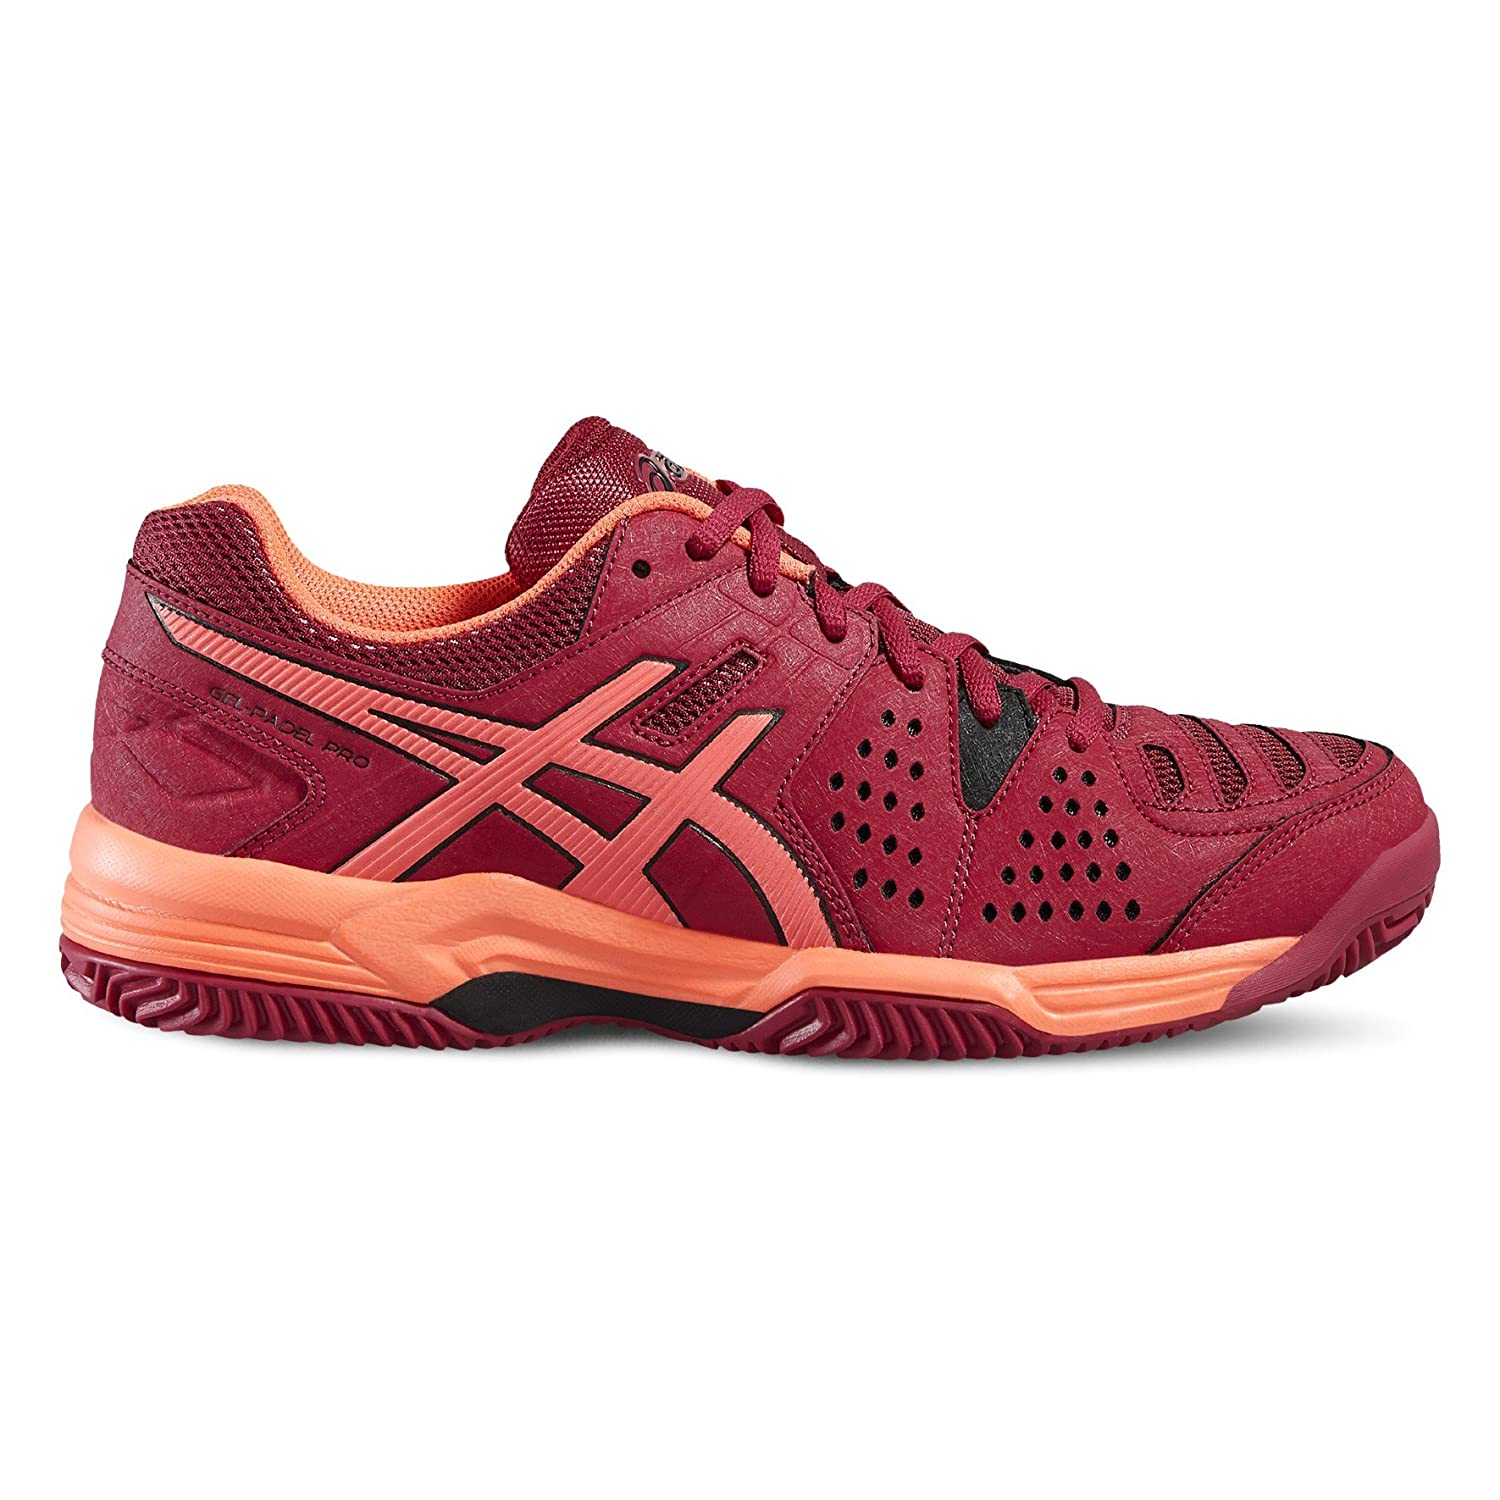 ASICS - Gel Padel Pro 3 SG, Color Rojo, Talla UK-3.5: Amazon.es ...